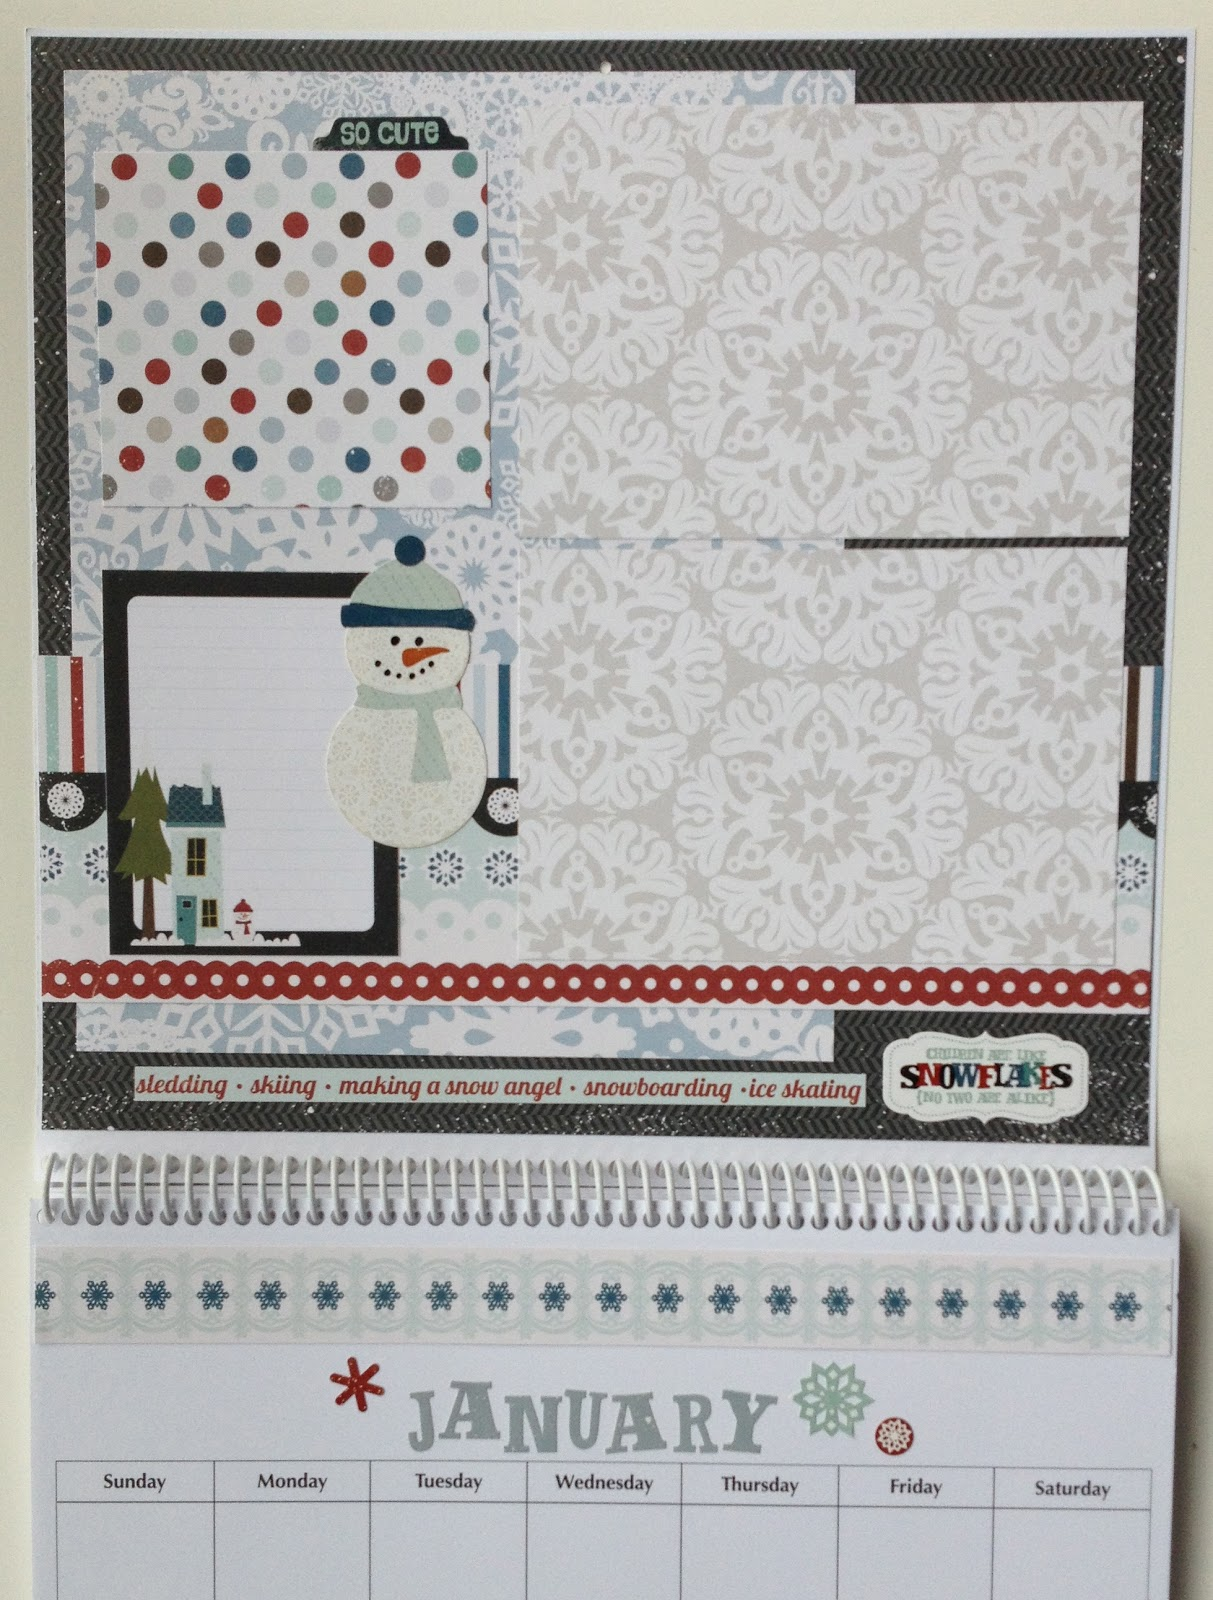 January scrapbook ideas - Monthly Themes Can Be Changed If One Or More Suggested Ideas Are Not Appropriate Calendar Layouts Will Differ From